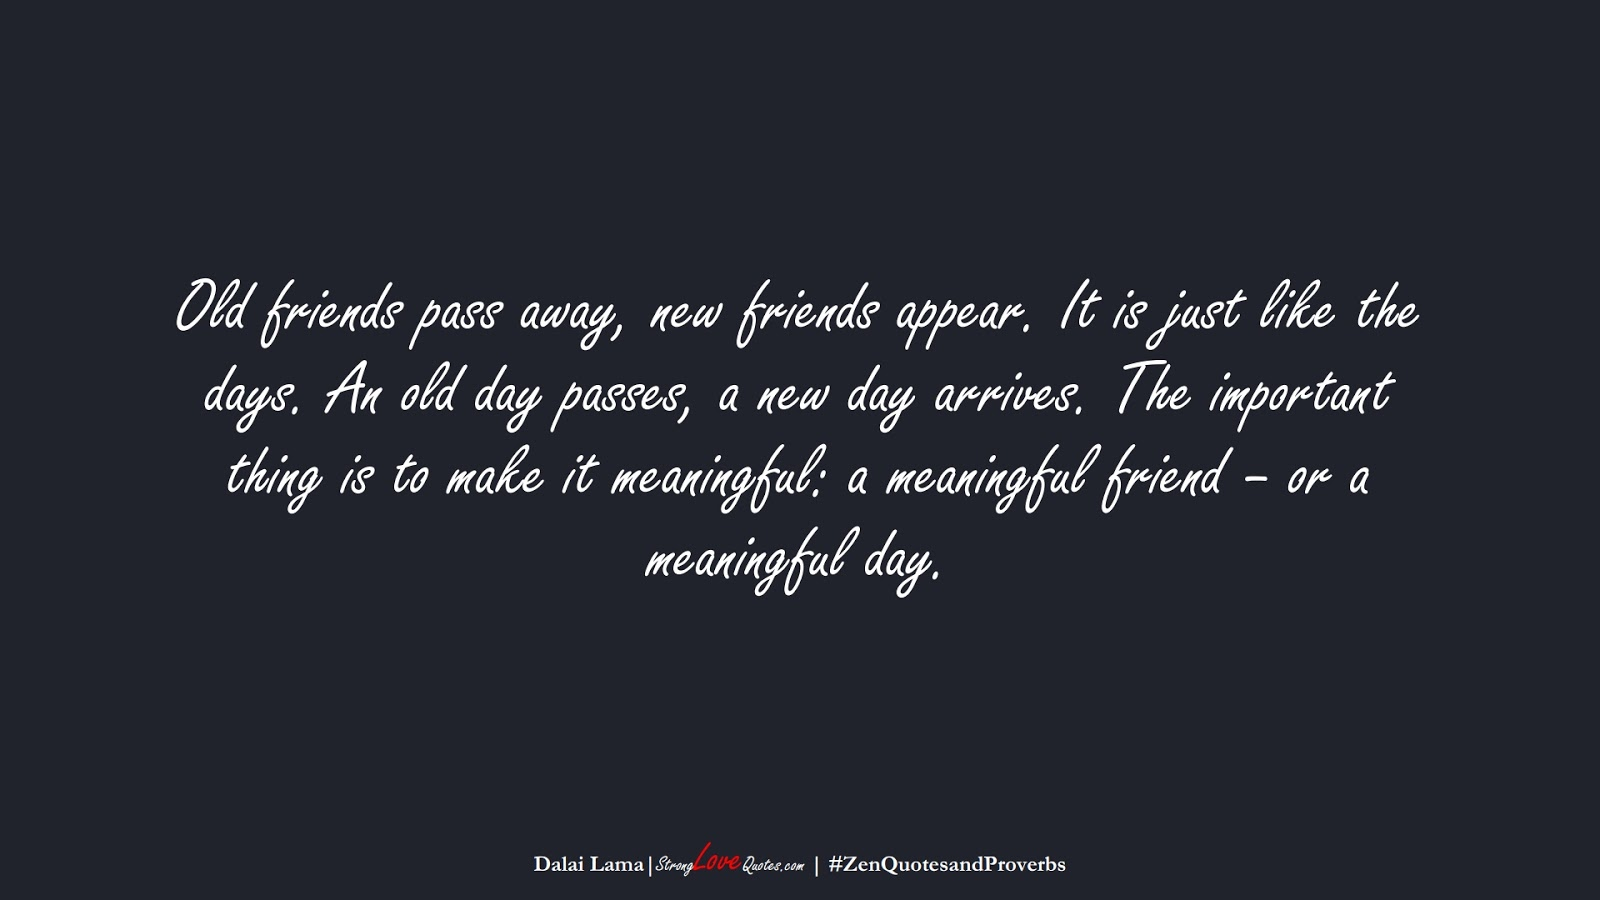 Old friends pass away, new friends appear. It is just like the days. An old day passes, a new day arrives. The important thing is to make it meaningful: a meaningful friend – or a meaningful day. (Dalai Lama);  #ZenQuotesandProverbs